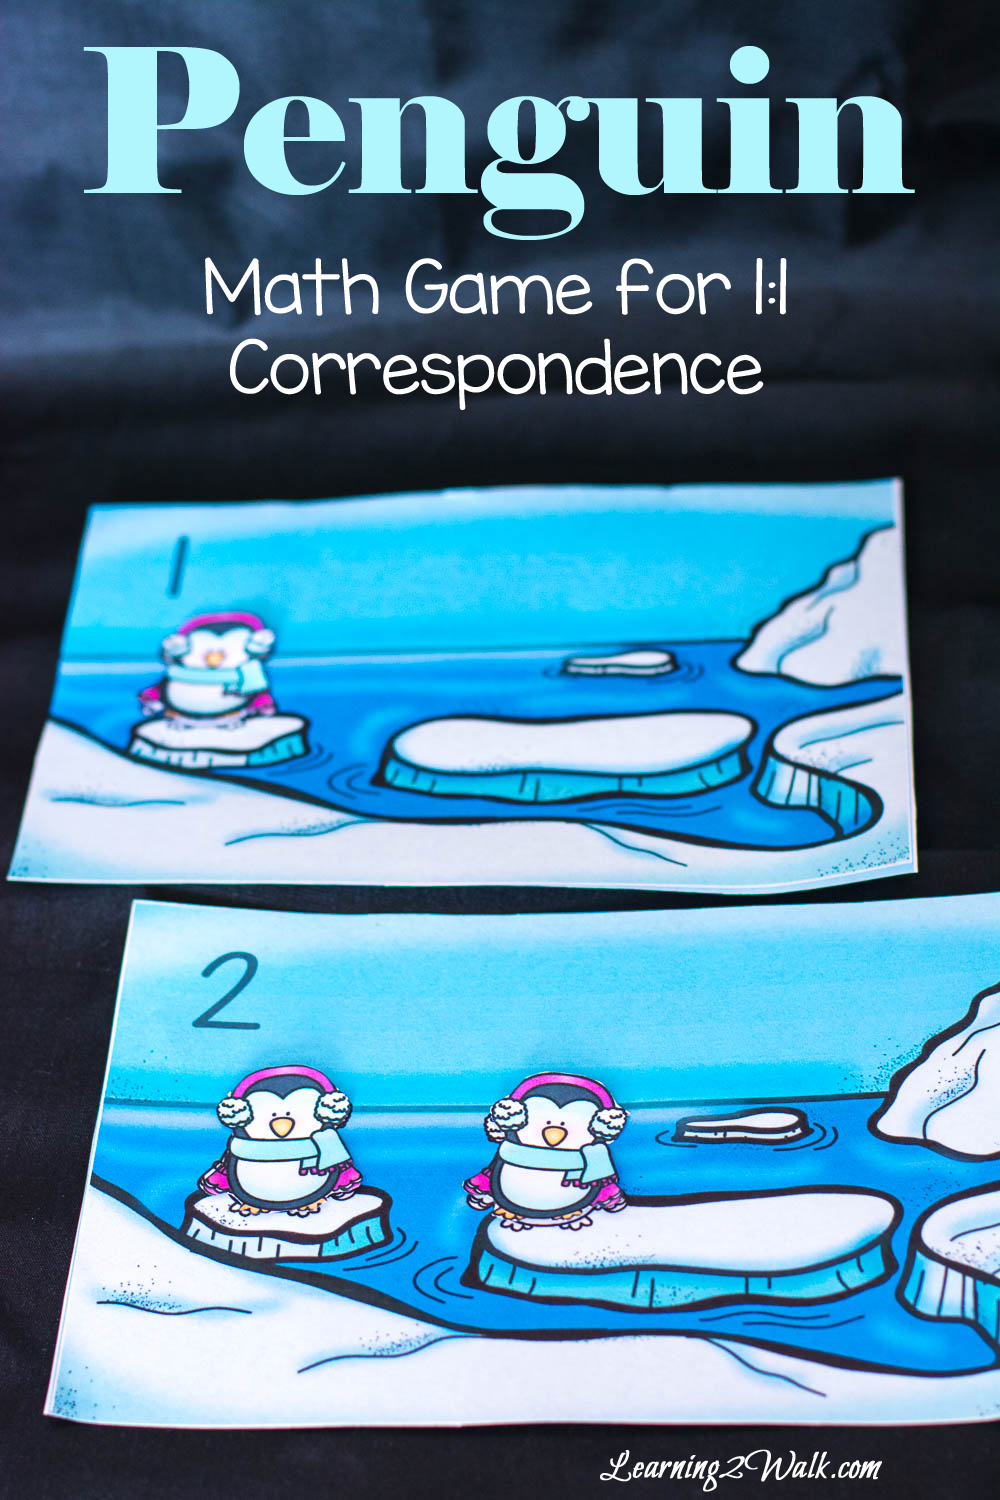 Penguin Math Game for 1:1 Correspondence | Math, Polar animals and ...